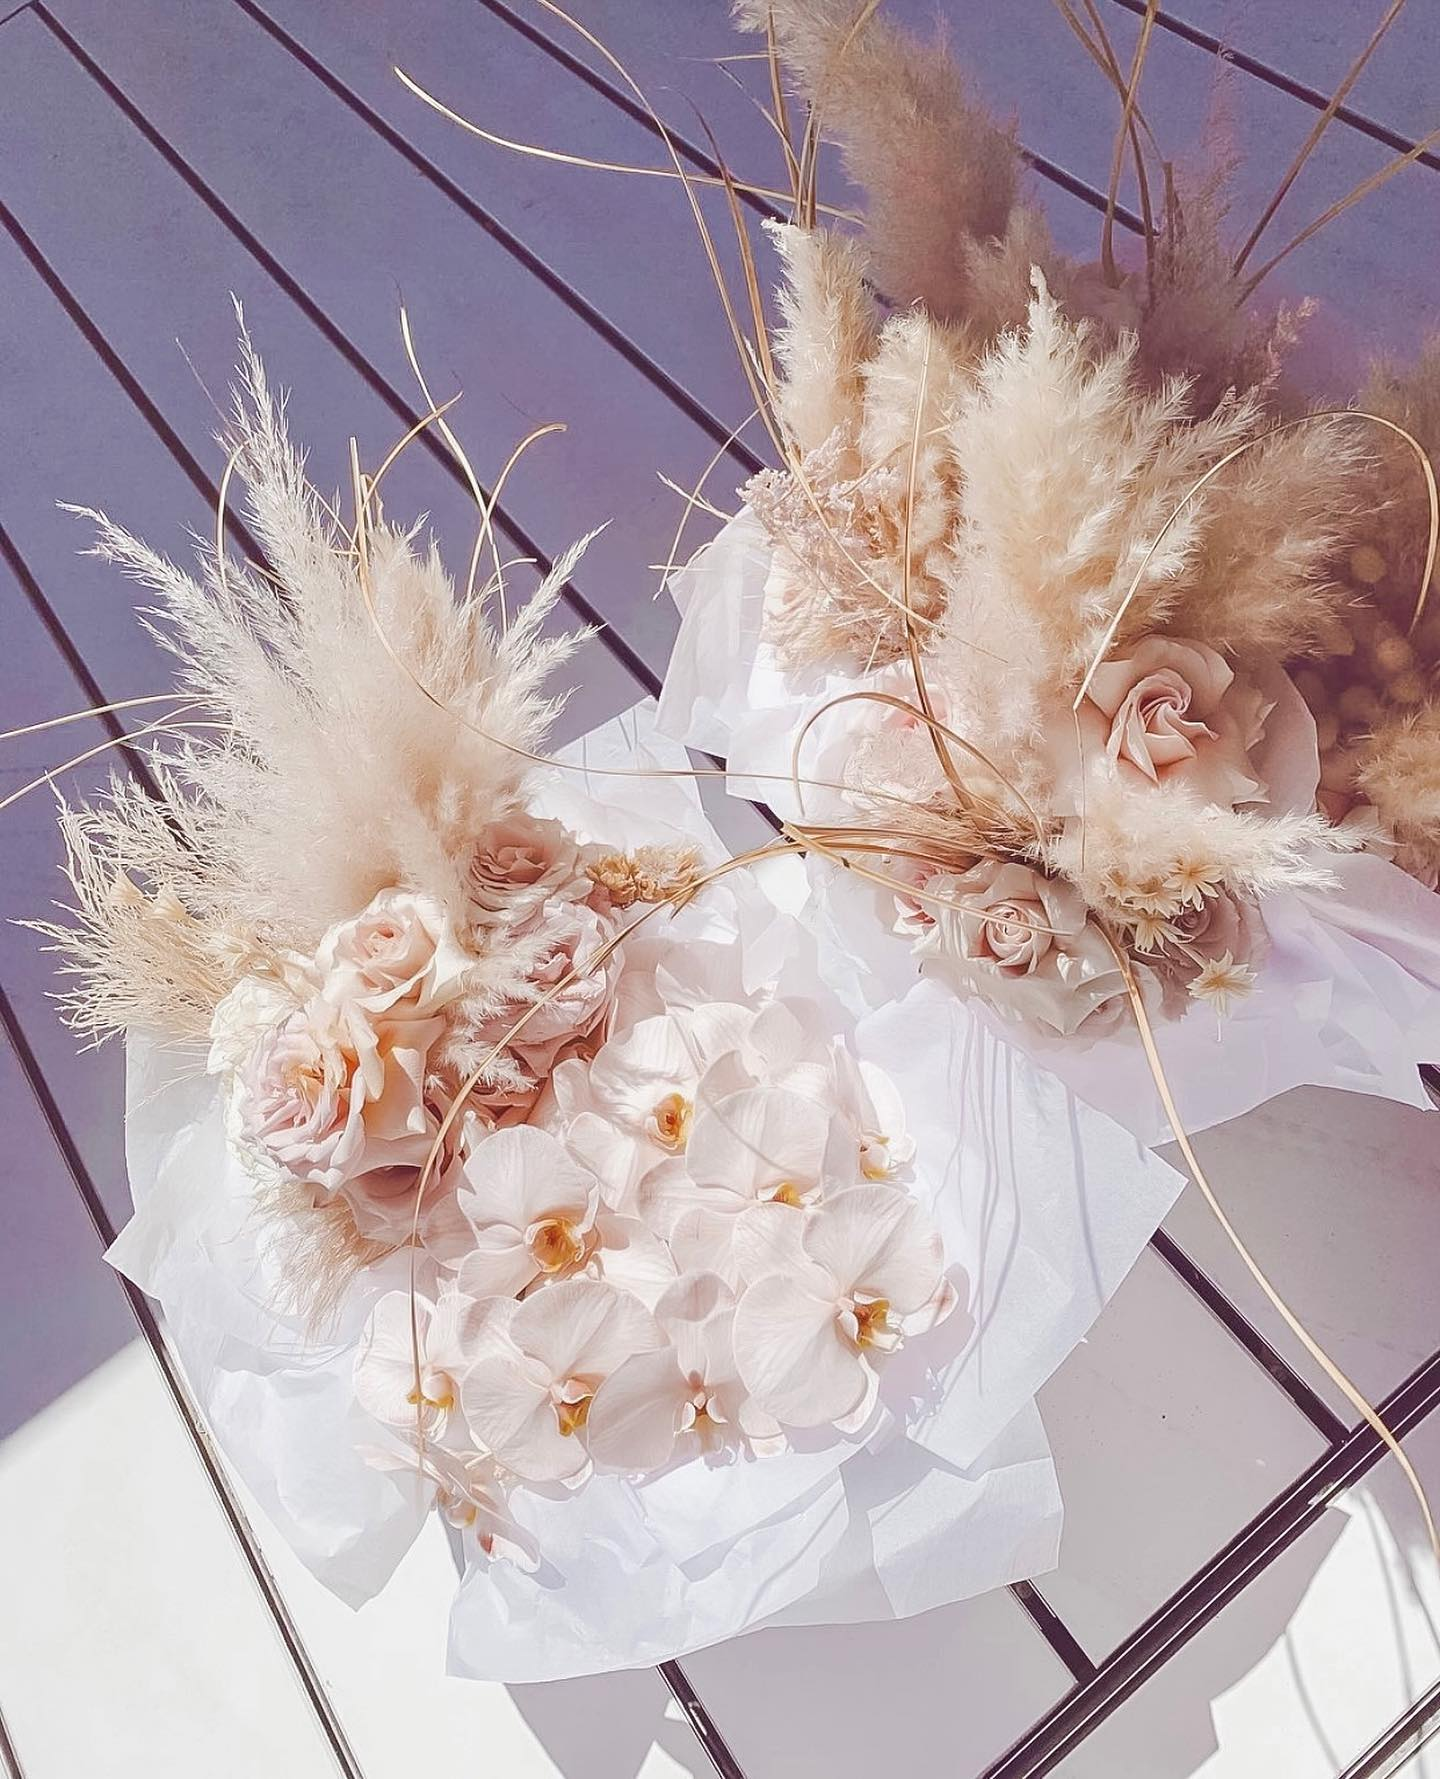 Bridal bouquet inspo alert! Pretty orchids, roses & pampas grass to make up these lovely bouquets 🌸🌷💗